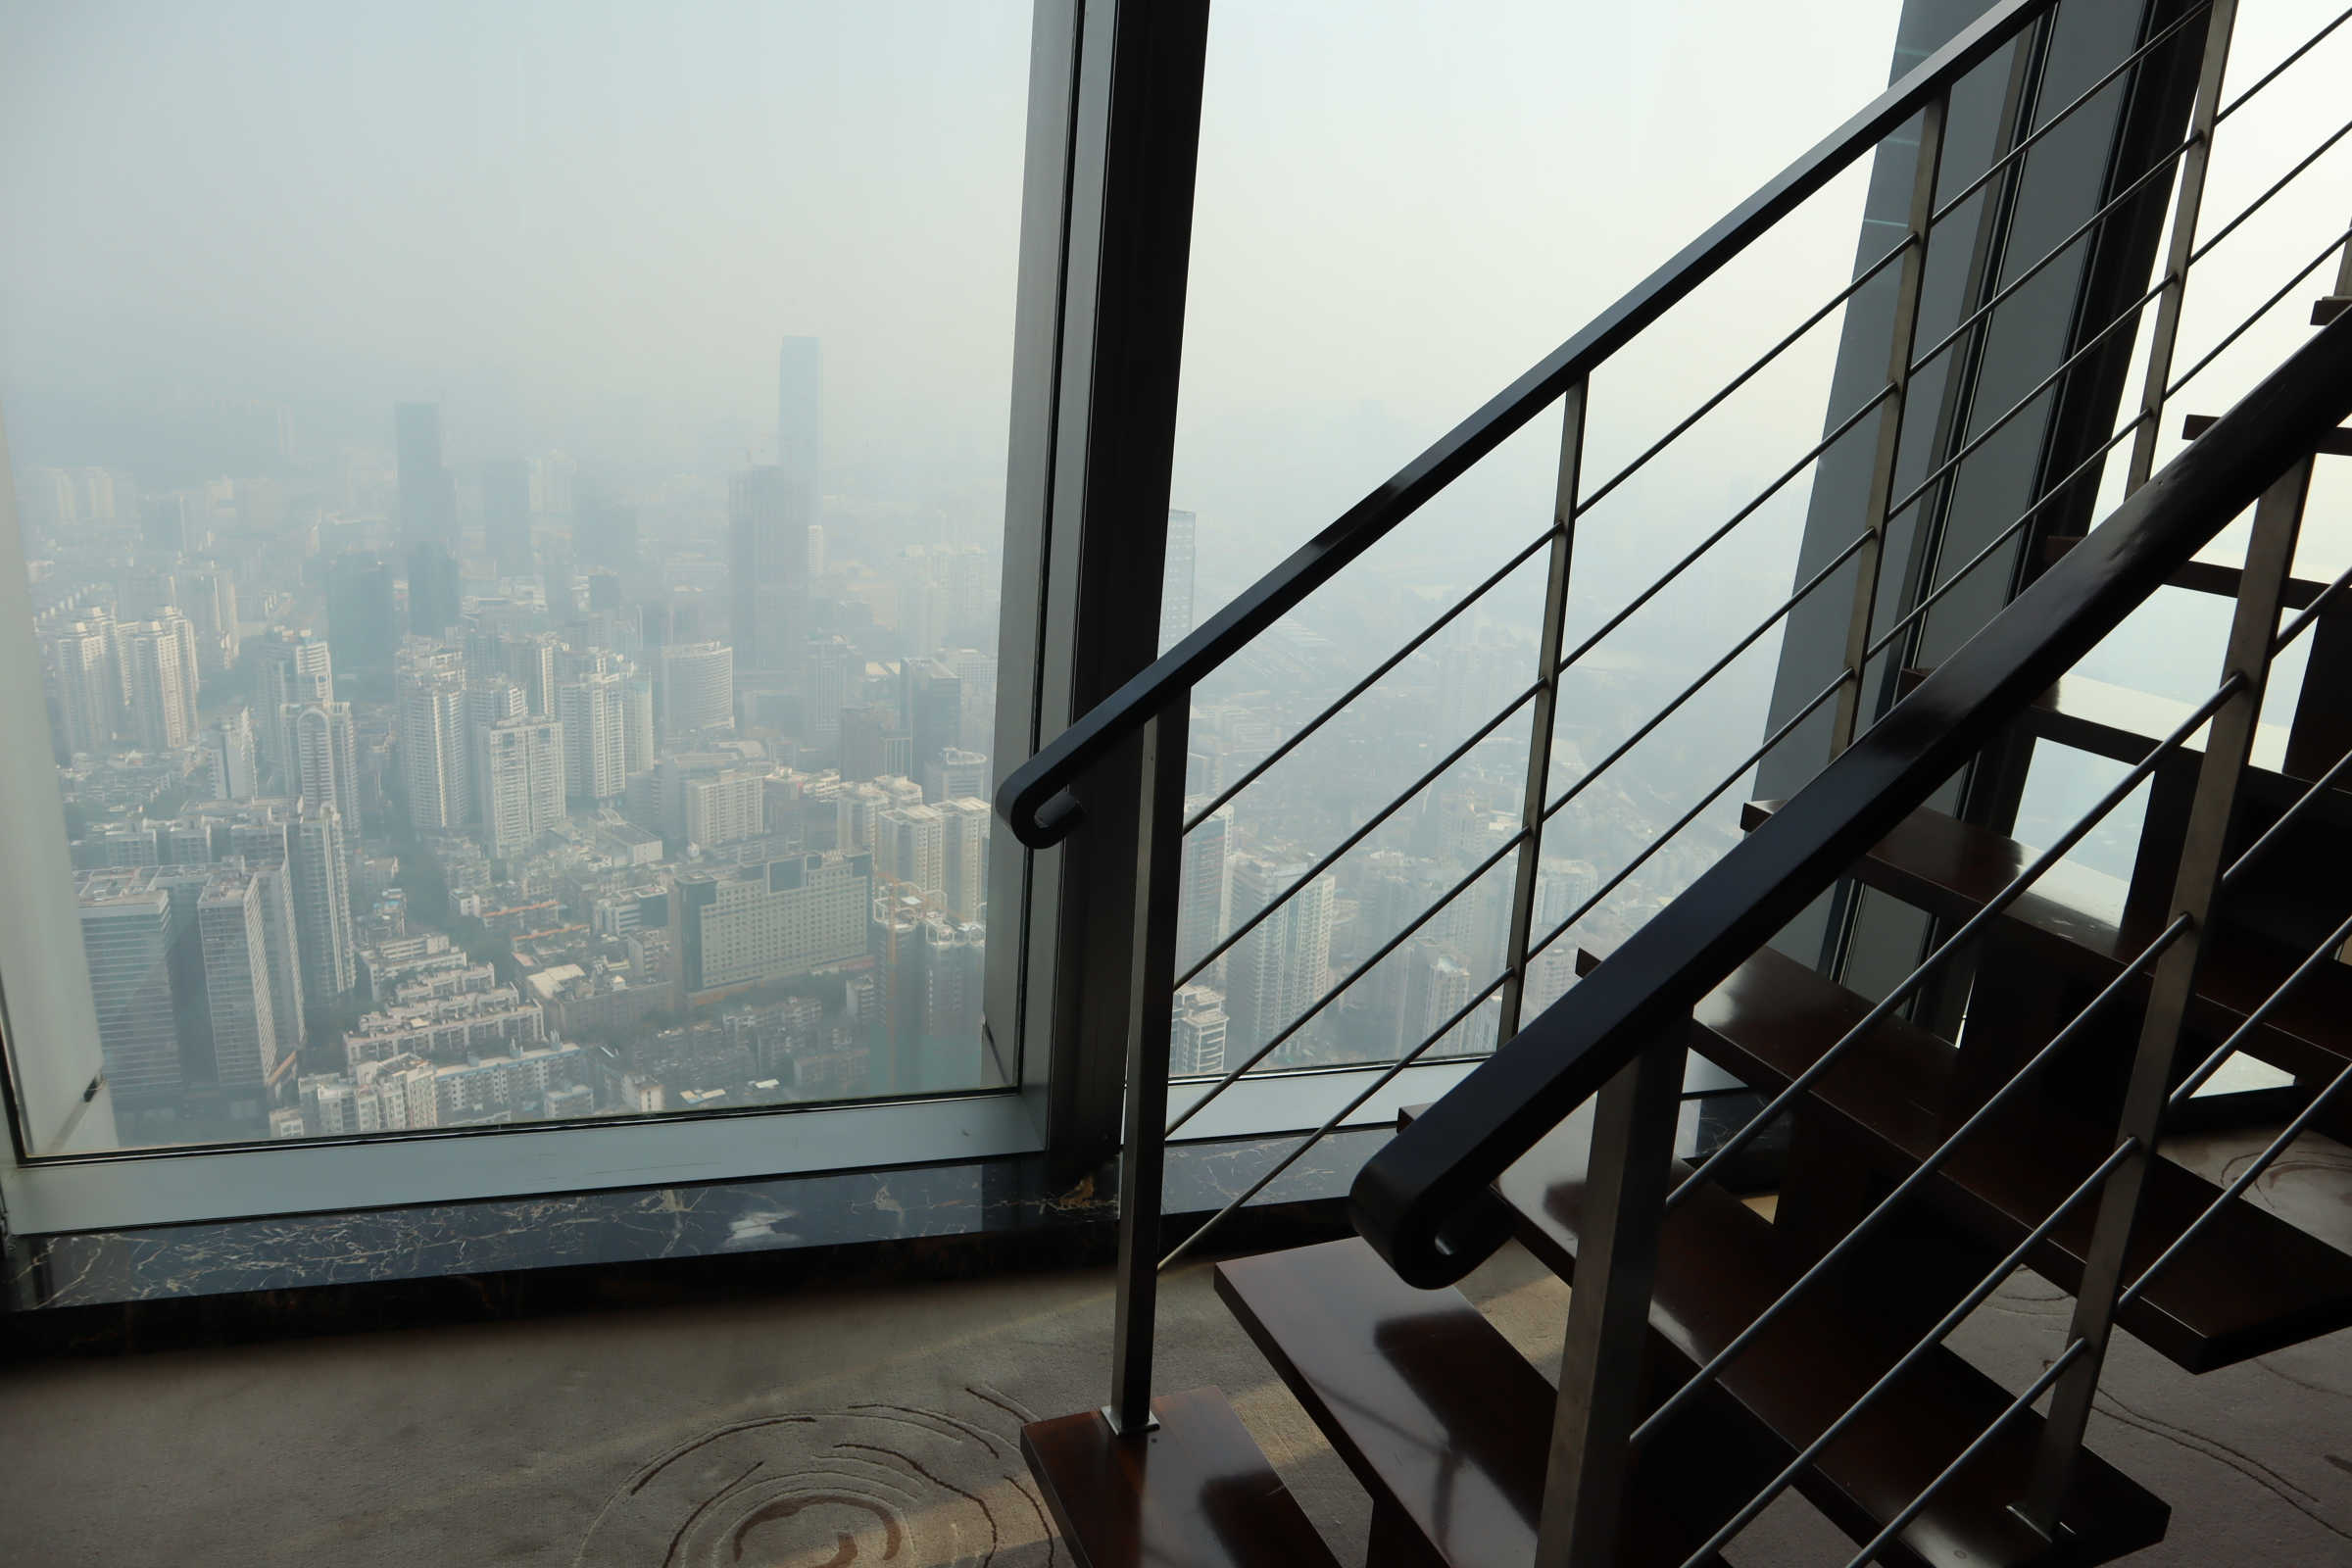 Views from the 76th floor in Shenzhen